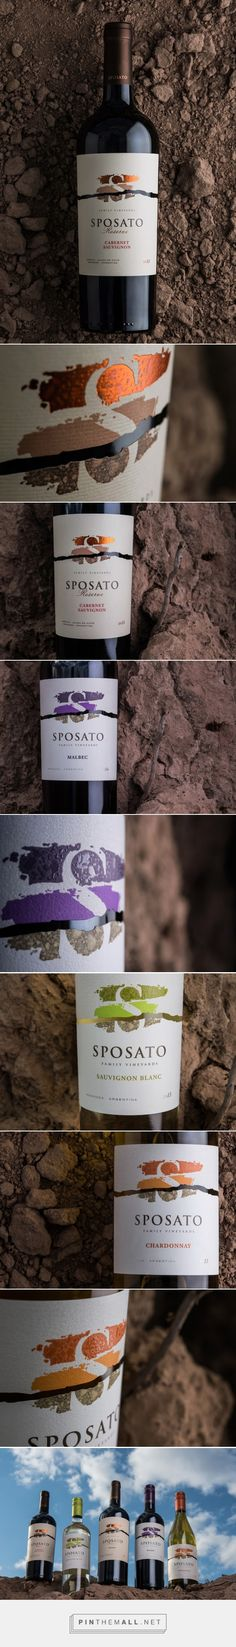 Sposato Family Vineyards - Packaging of the World - Creative Package Design…